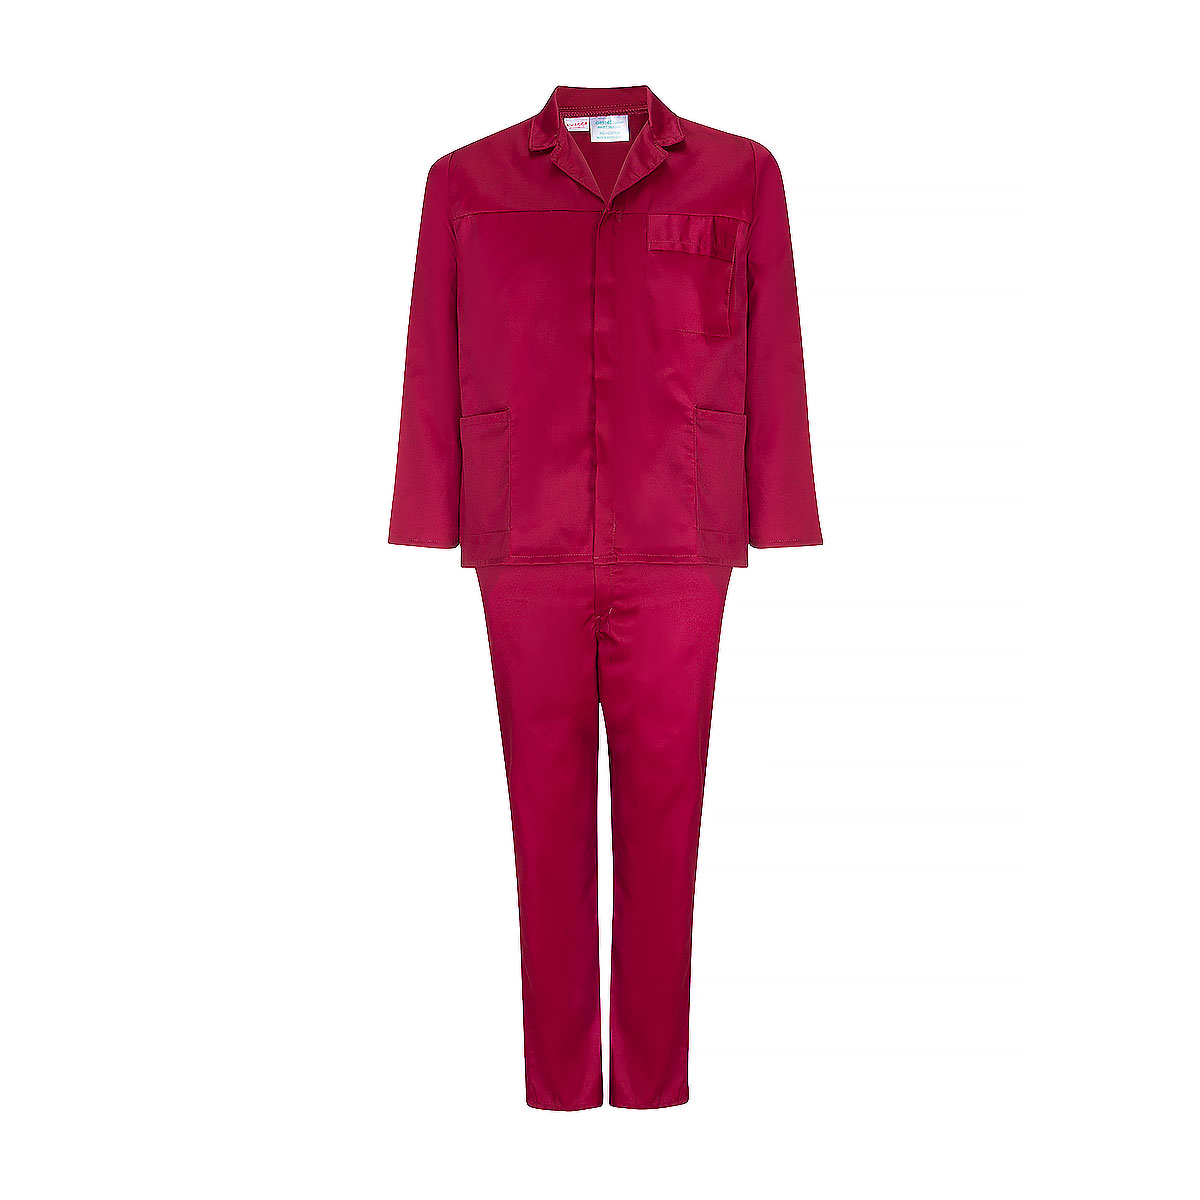 2-piece-conti-suit-overall-polycotton-red